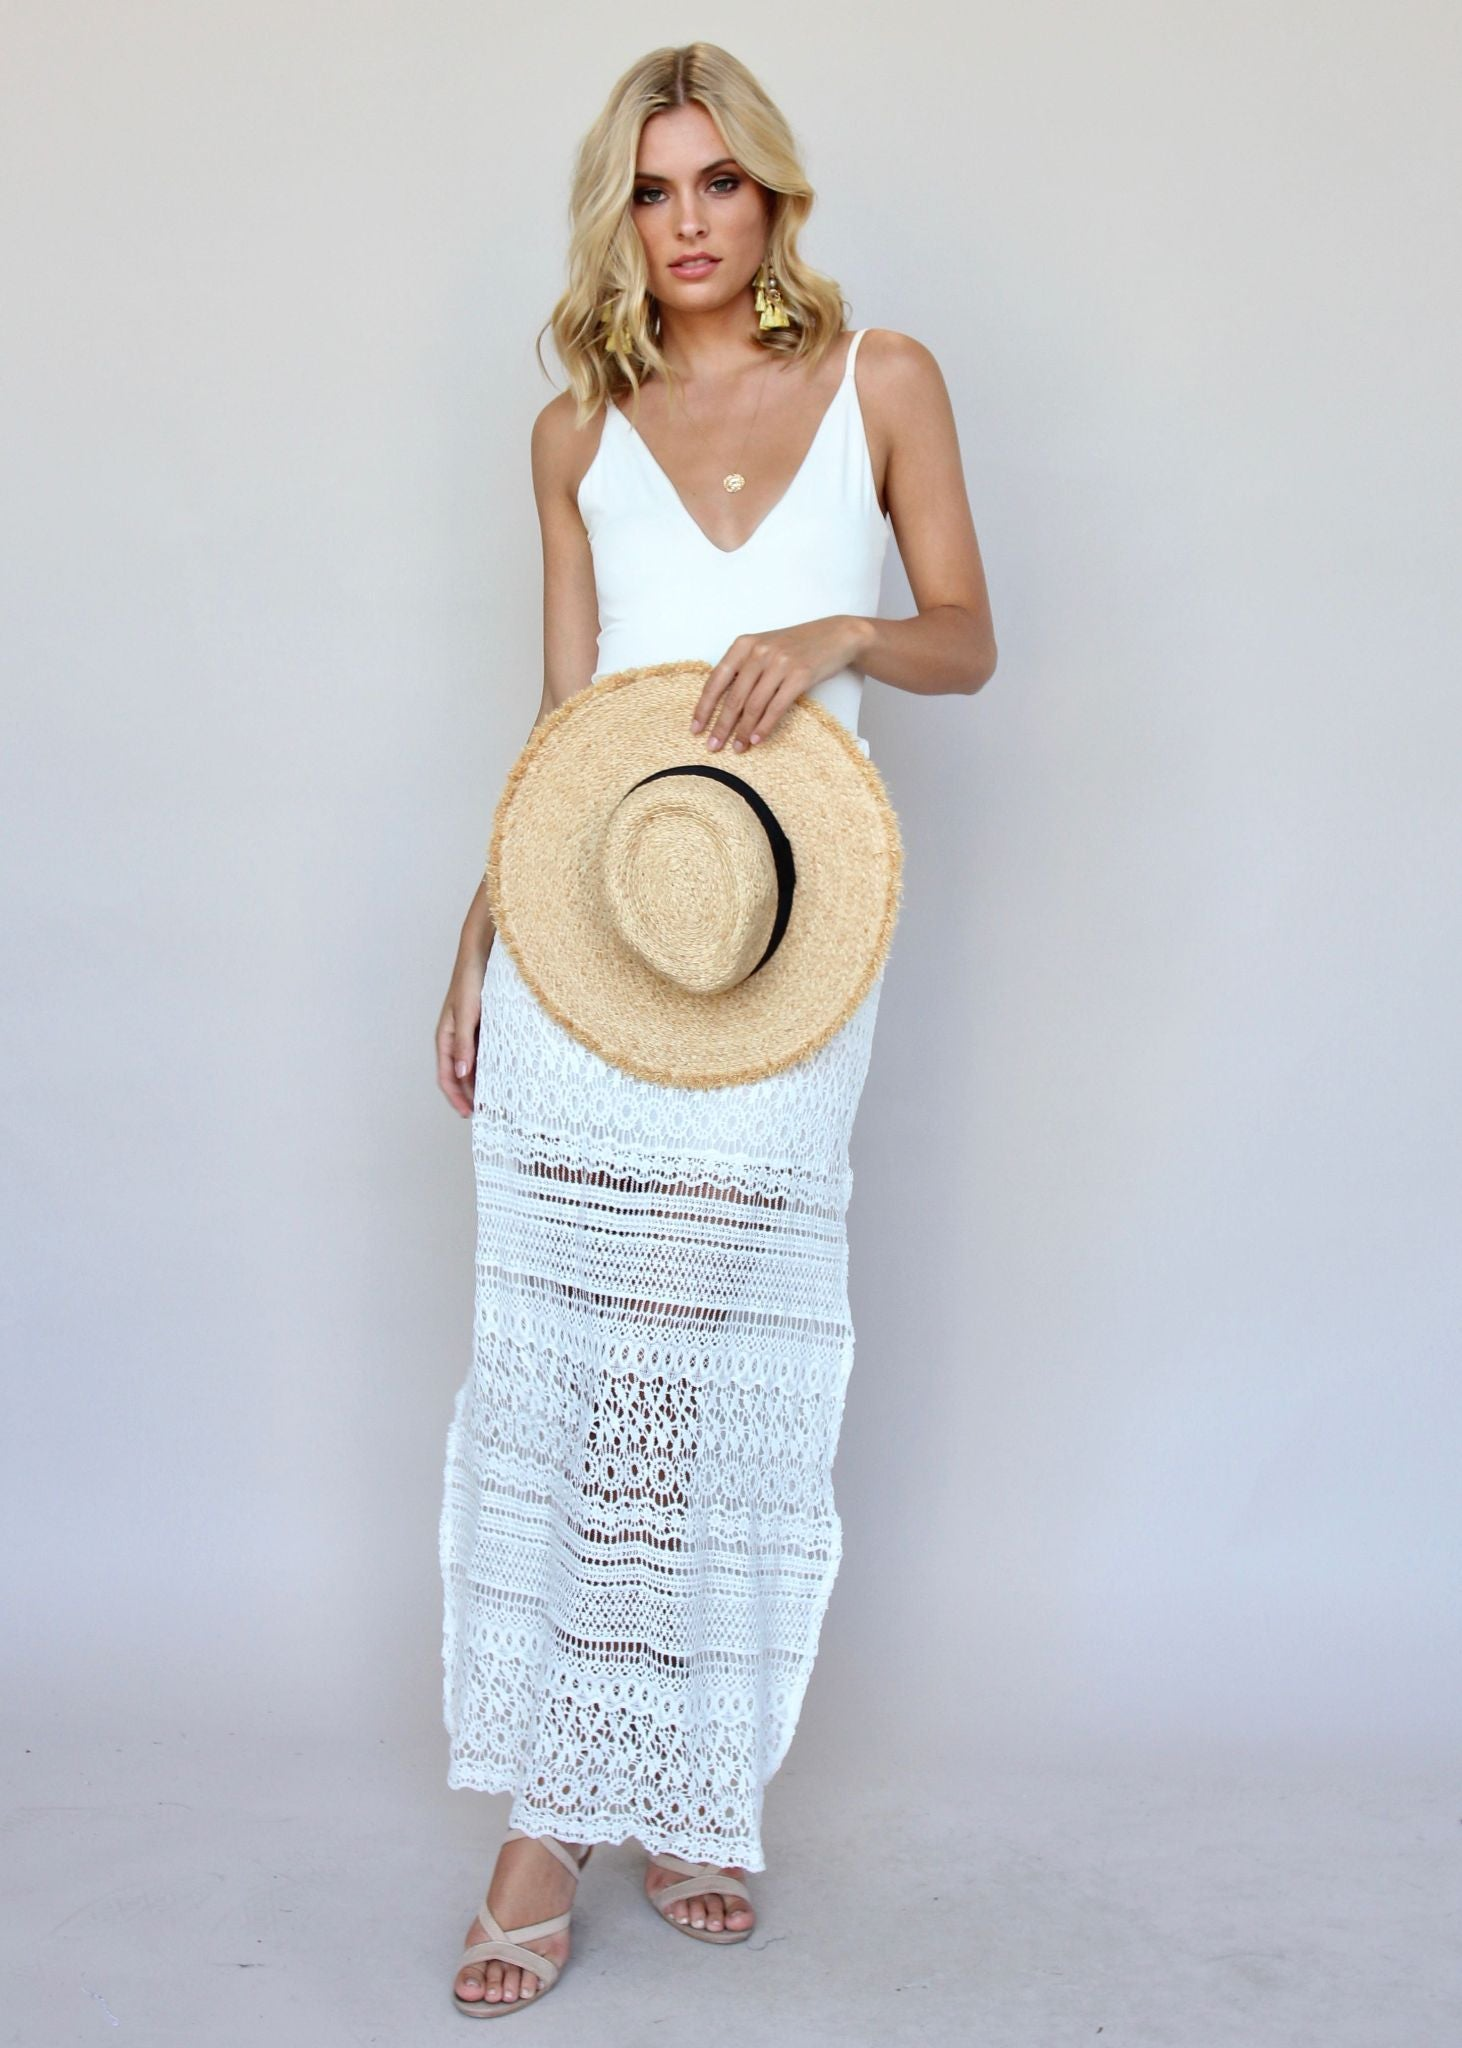 Hey Vacay Lace Skirt - White